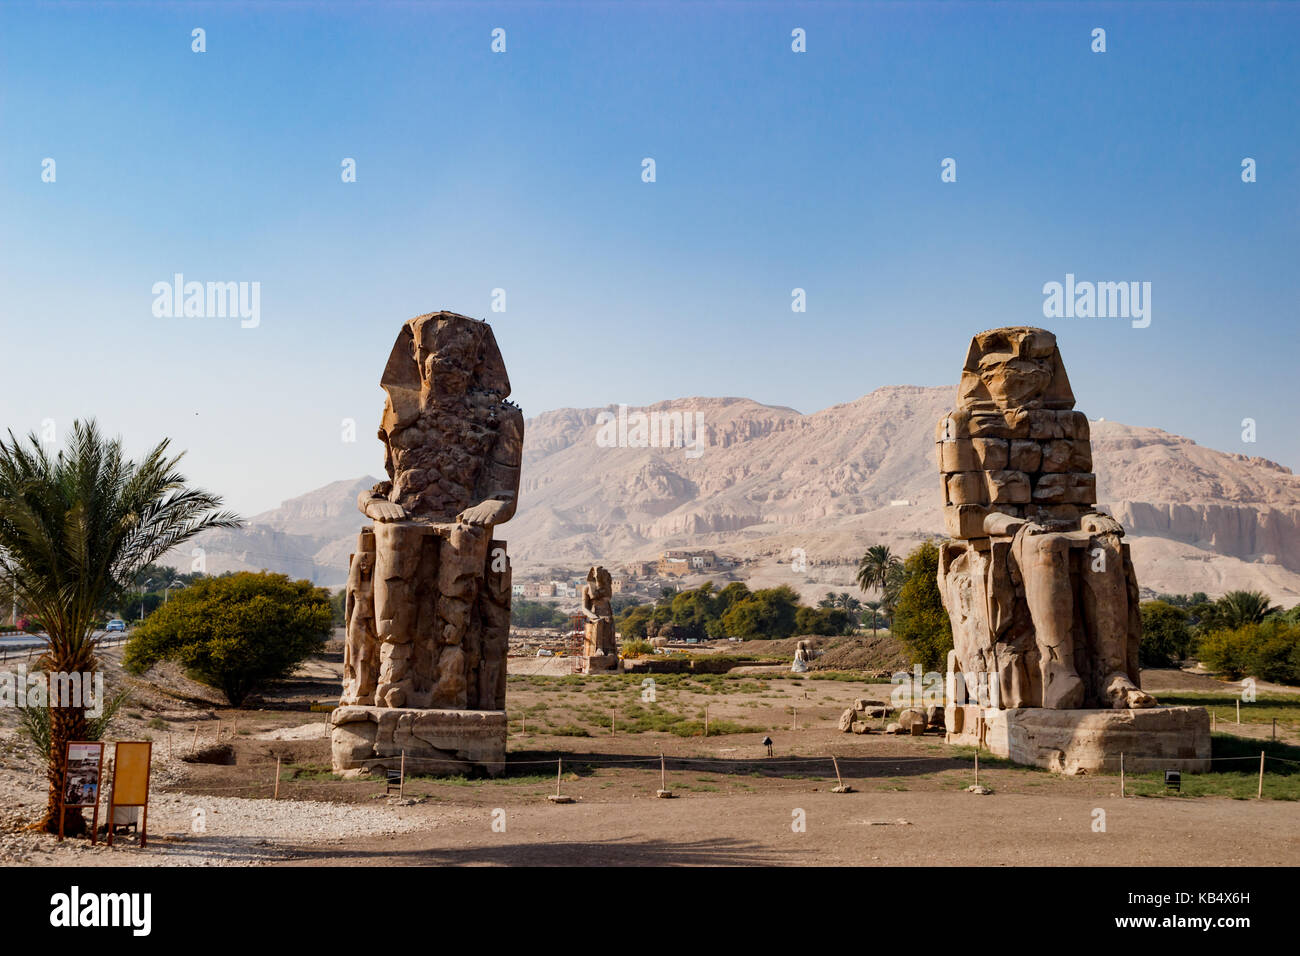 Les ruines de statues à Louxor, Egypte Photo Stock